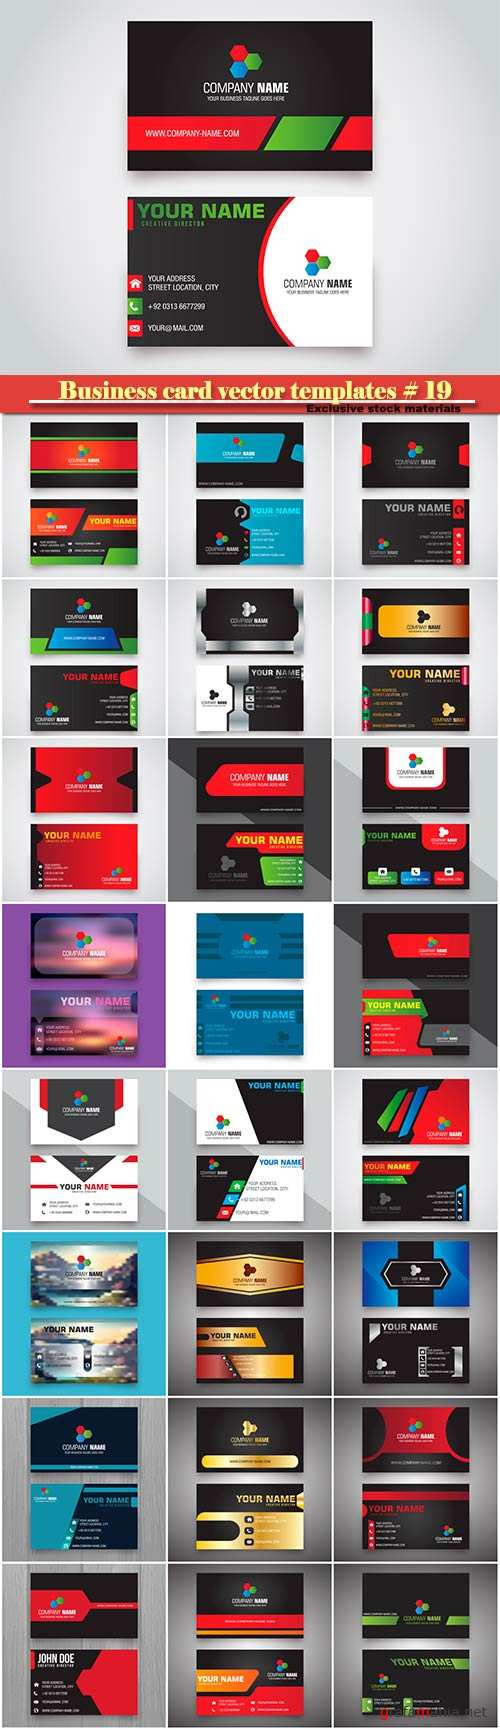 Business card vector templates # 19